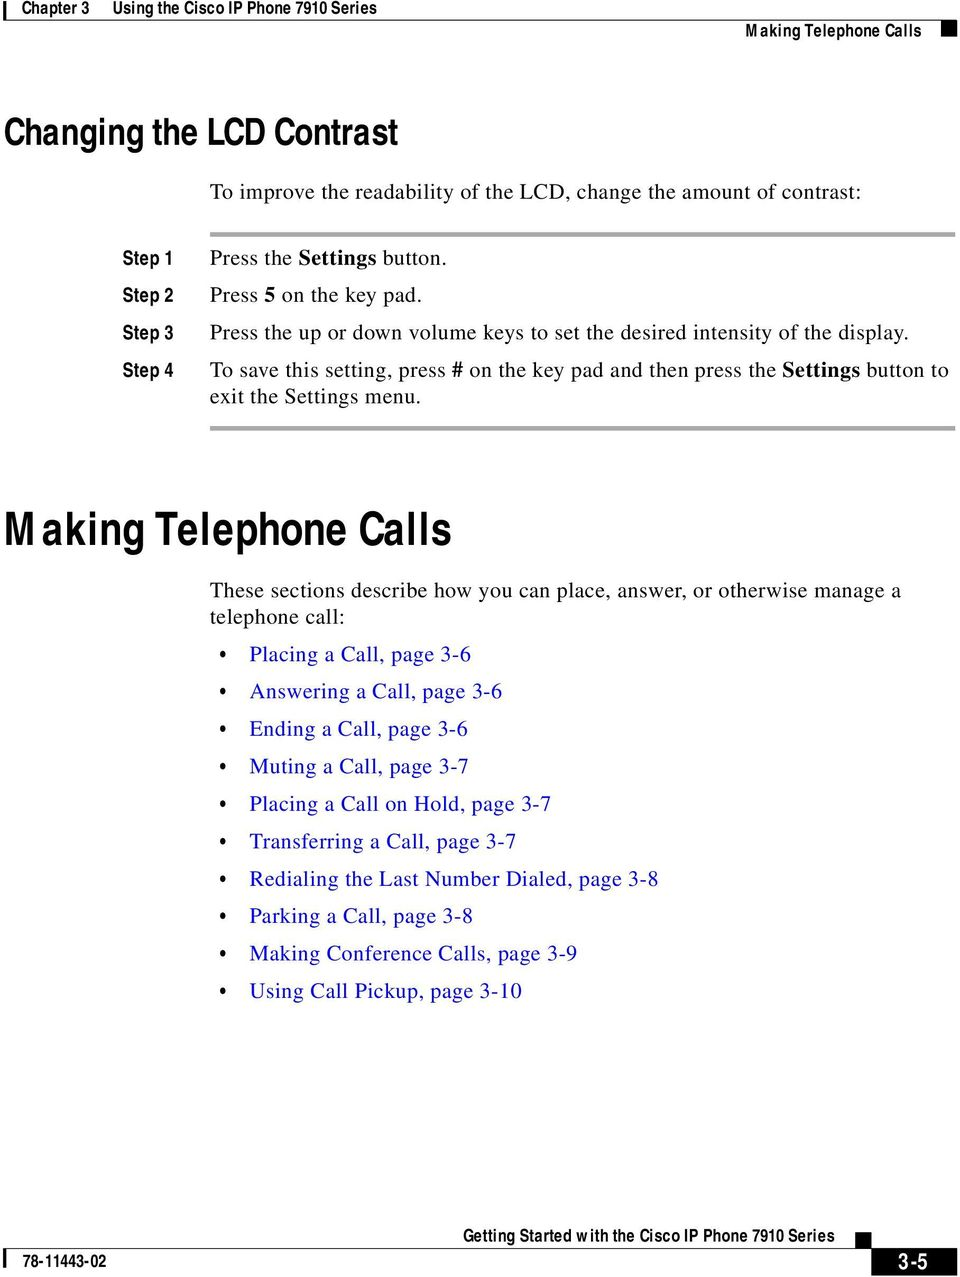 Making Telephone Calls These sections describe how you can place, answer, or otherwise manage a telephone call: Placing a Call, page 3-6 Answering a Call, page 3-6 Ending a Call, page 3-6